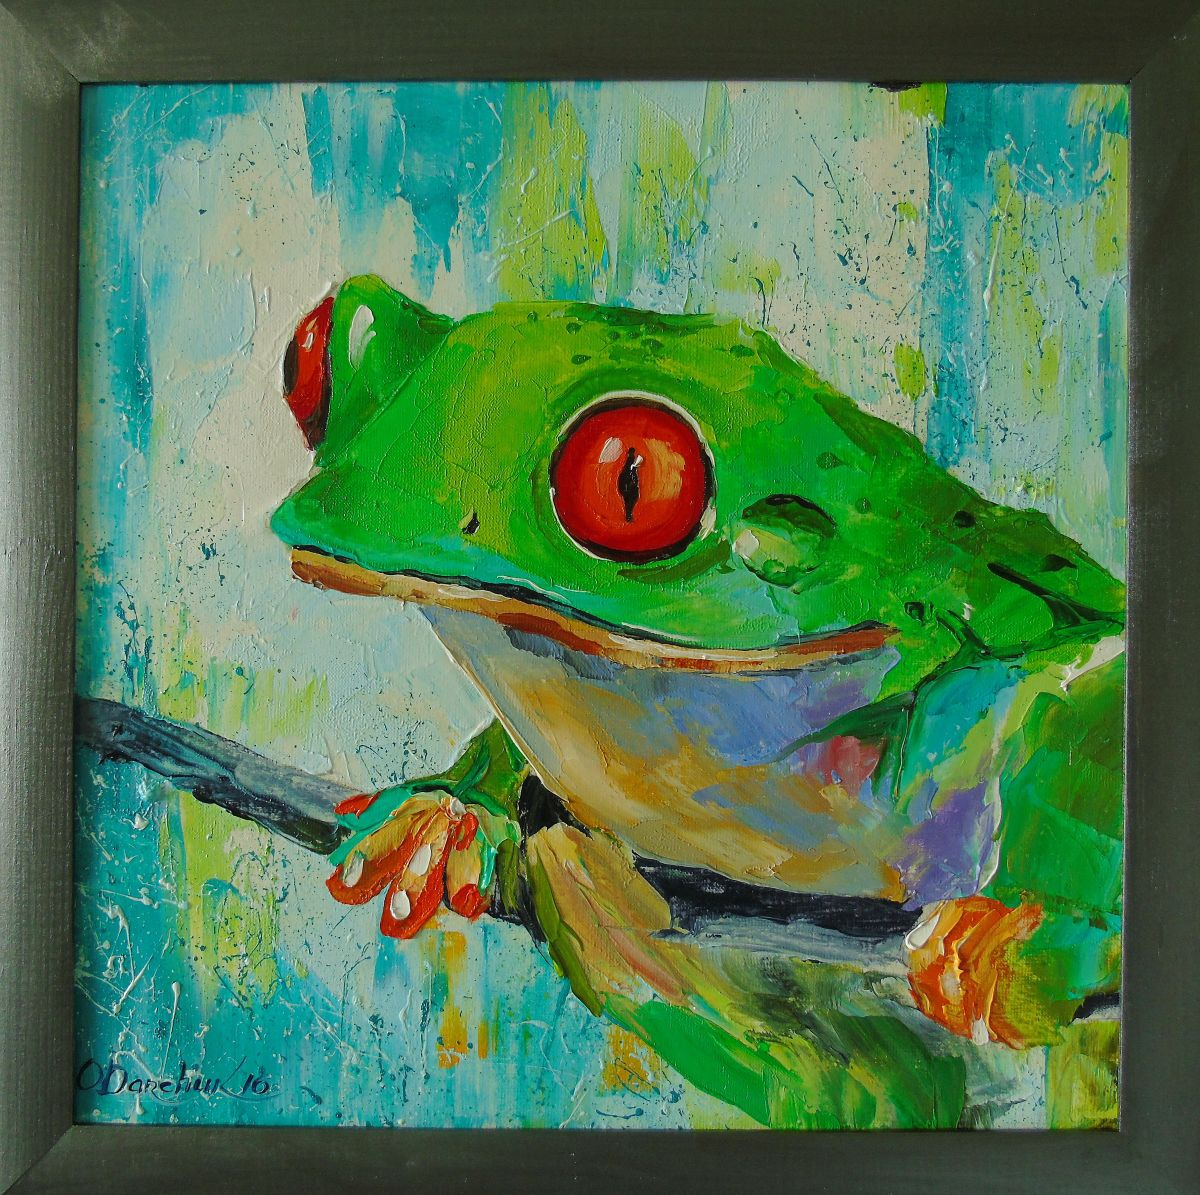 Frog (2016) Oil painting by Olha Darchuk | Artfinder